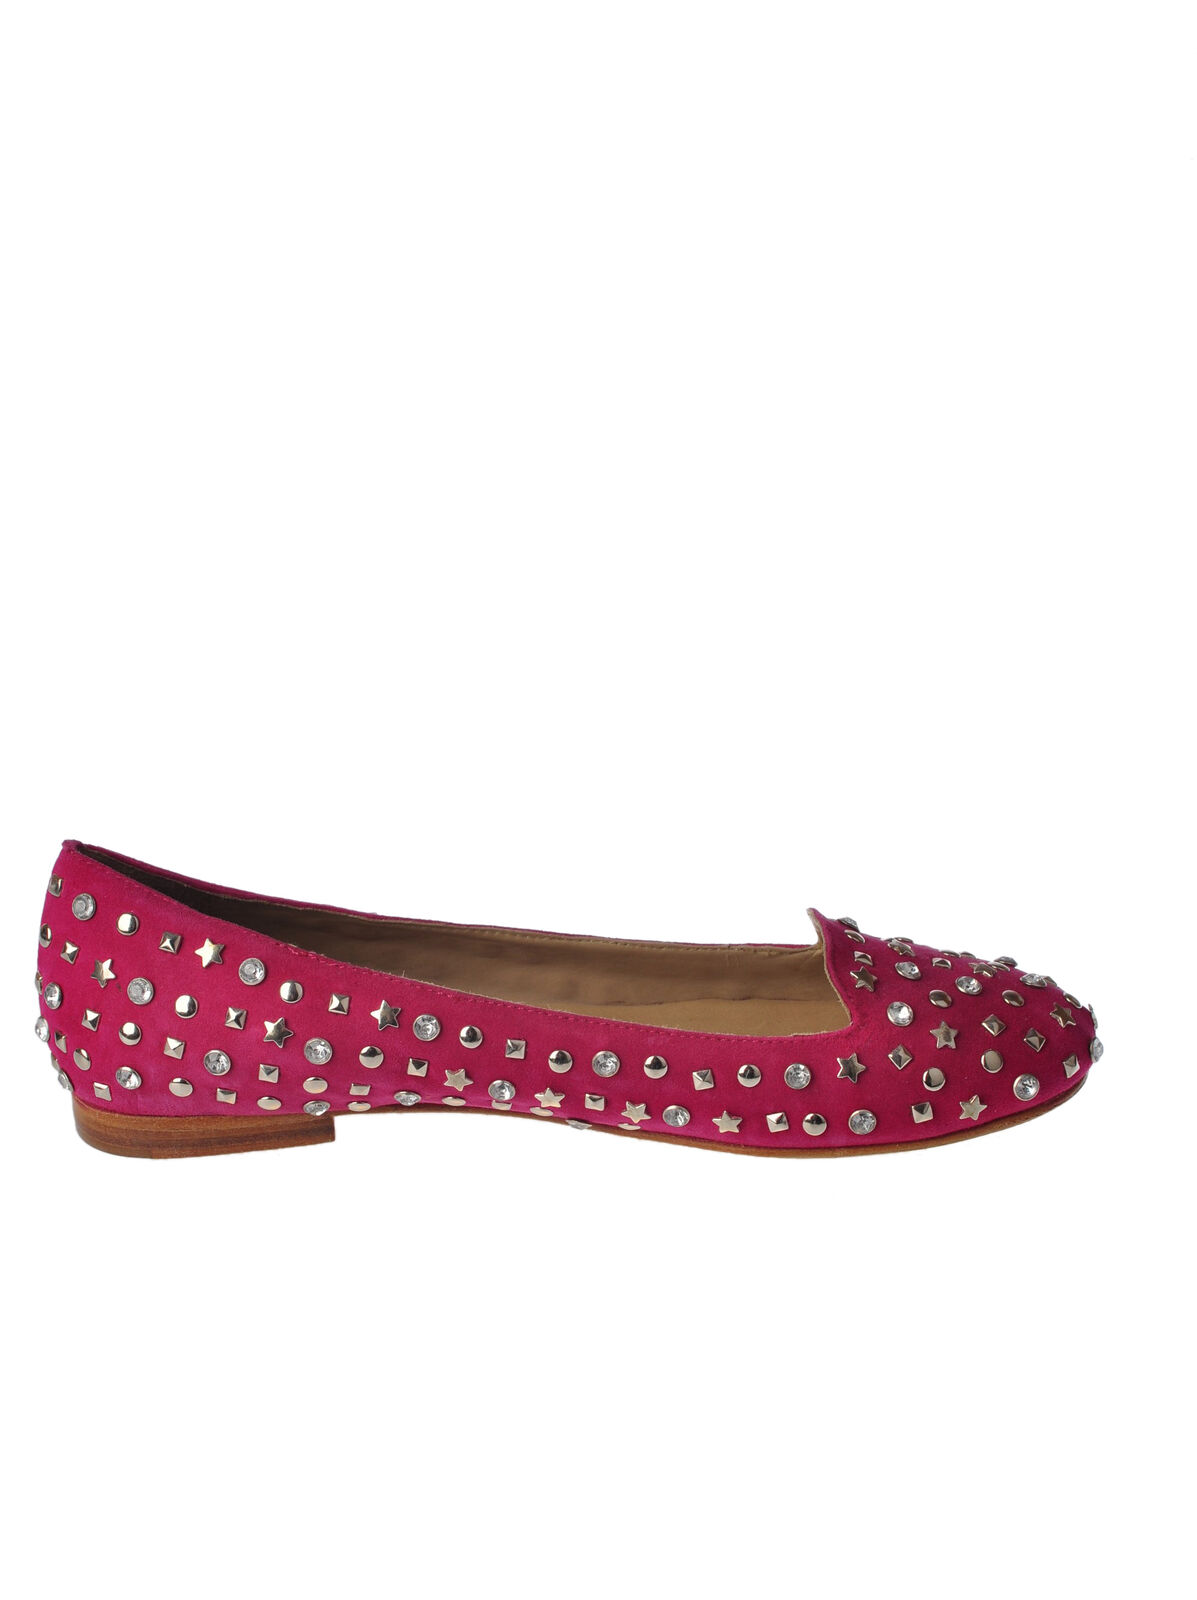 Mr Wolf  -  Moccasins - Female - pink - 3299719A185349